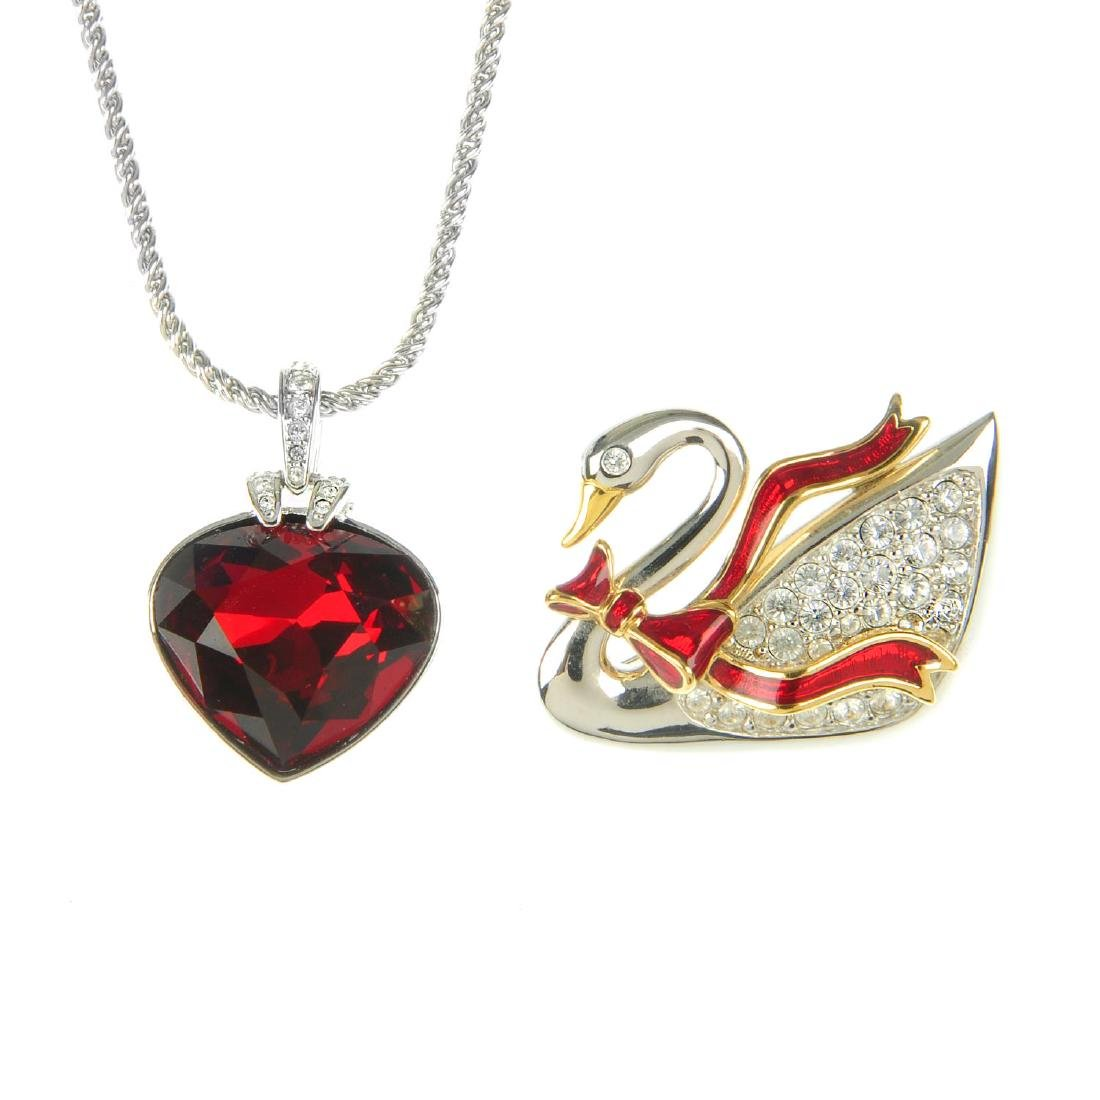 SWAROVSKI - two necklaces, two pairs of earrings, a